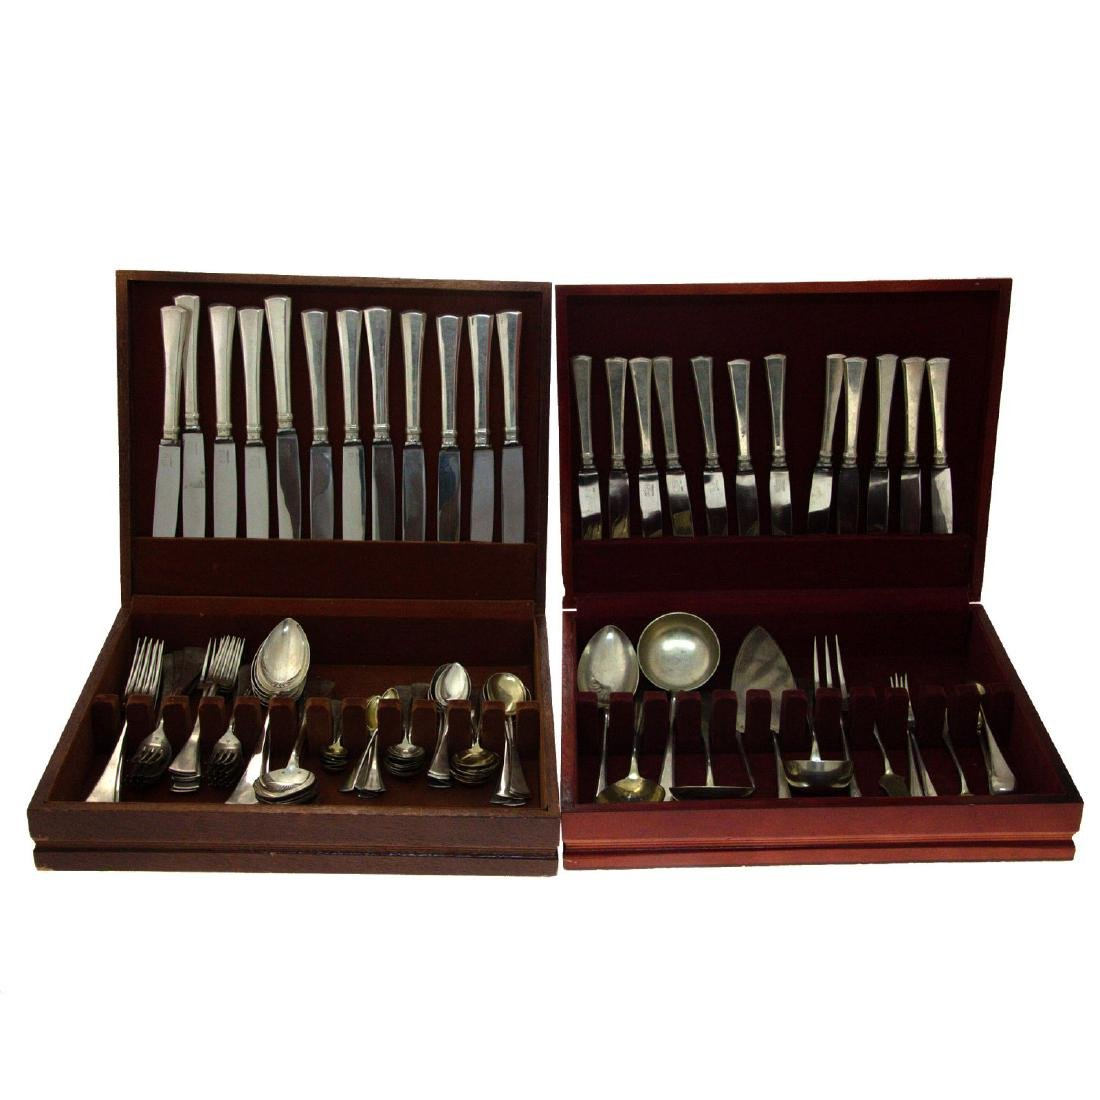 Silver cutlery set for 12 diners, Czechoslovakia,